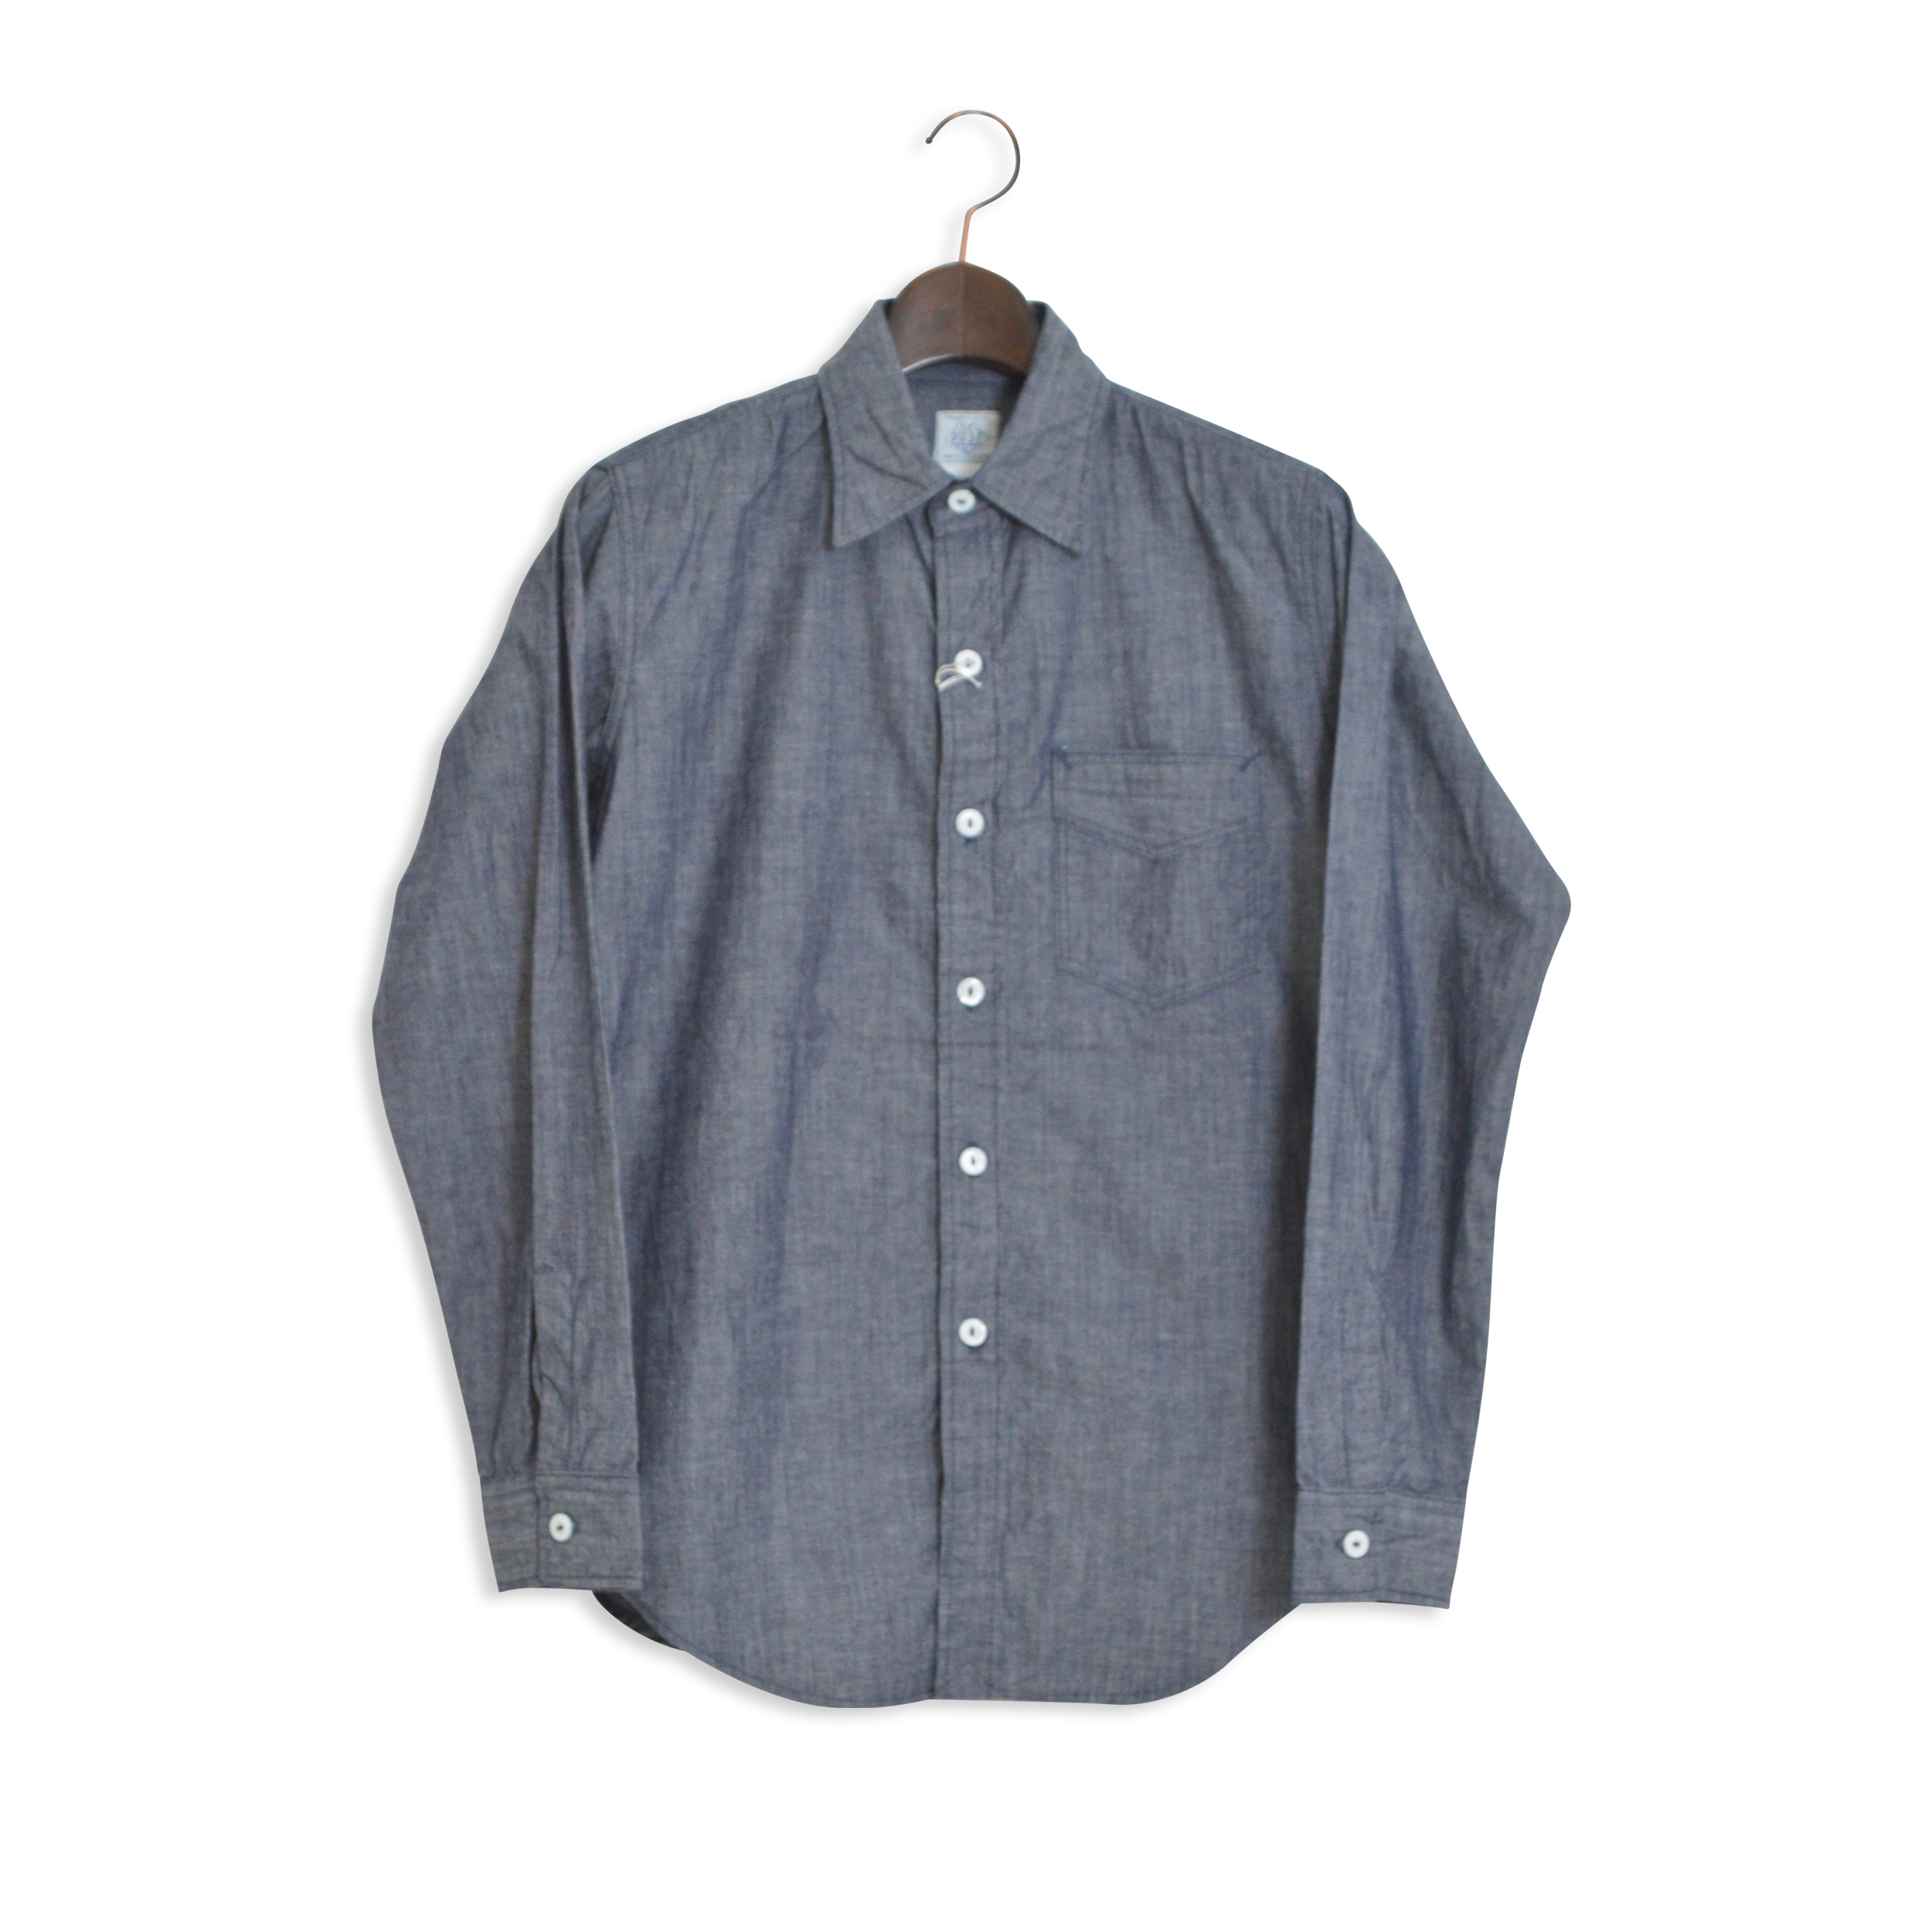 【POST O'ALLS】POST OVERALLS(ポストオーバーオールズ)/2213 THE POST4/CONE CHAMBRAY (1703)